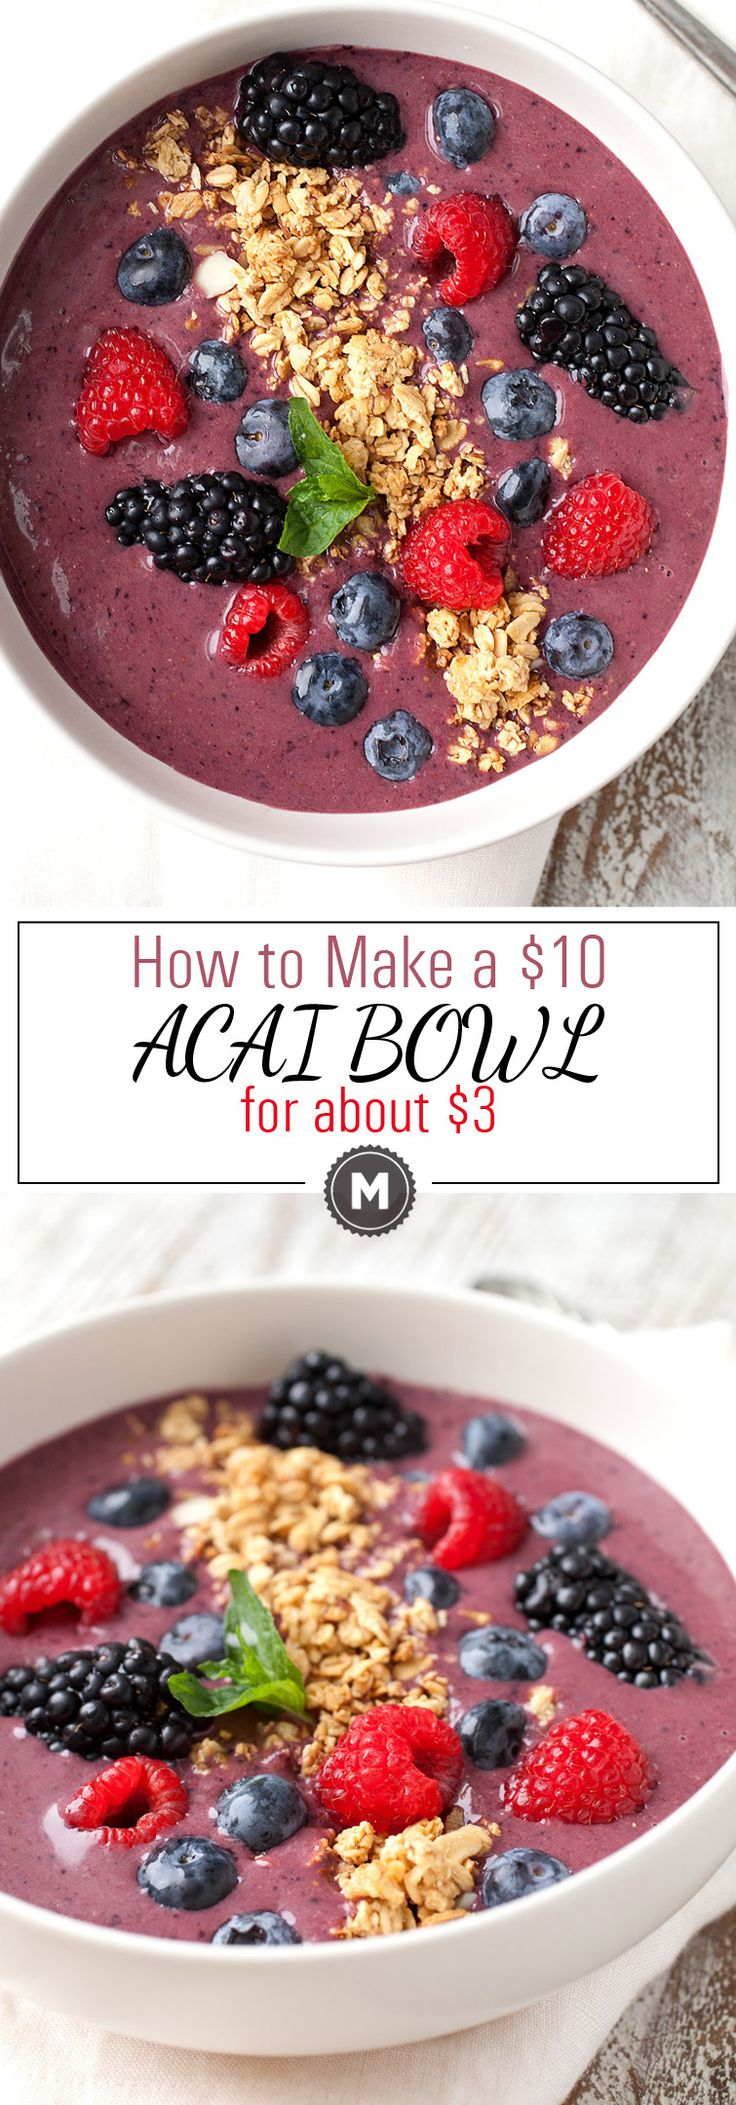 How to Make a $10 Acai Bowl for $3: Acai bowls are all the rage these days but you might get sticker shock if you try to order one at a healthy breakfast spot. Luckily, you can easily make these at home if you have a blender. They are a perfect healthy way to start the day! | macheesmo.com